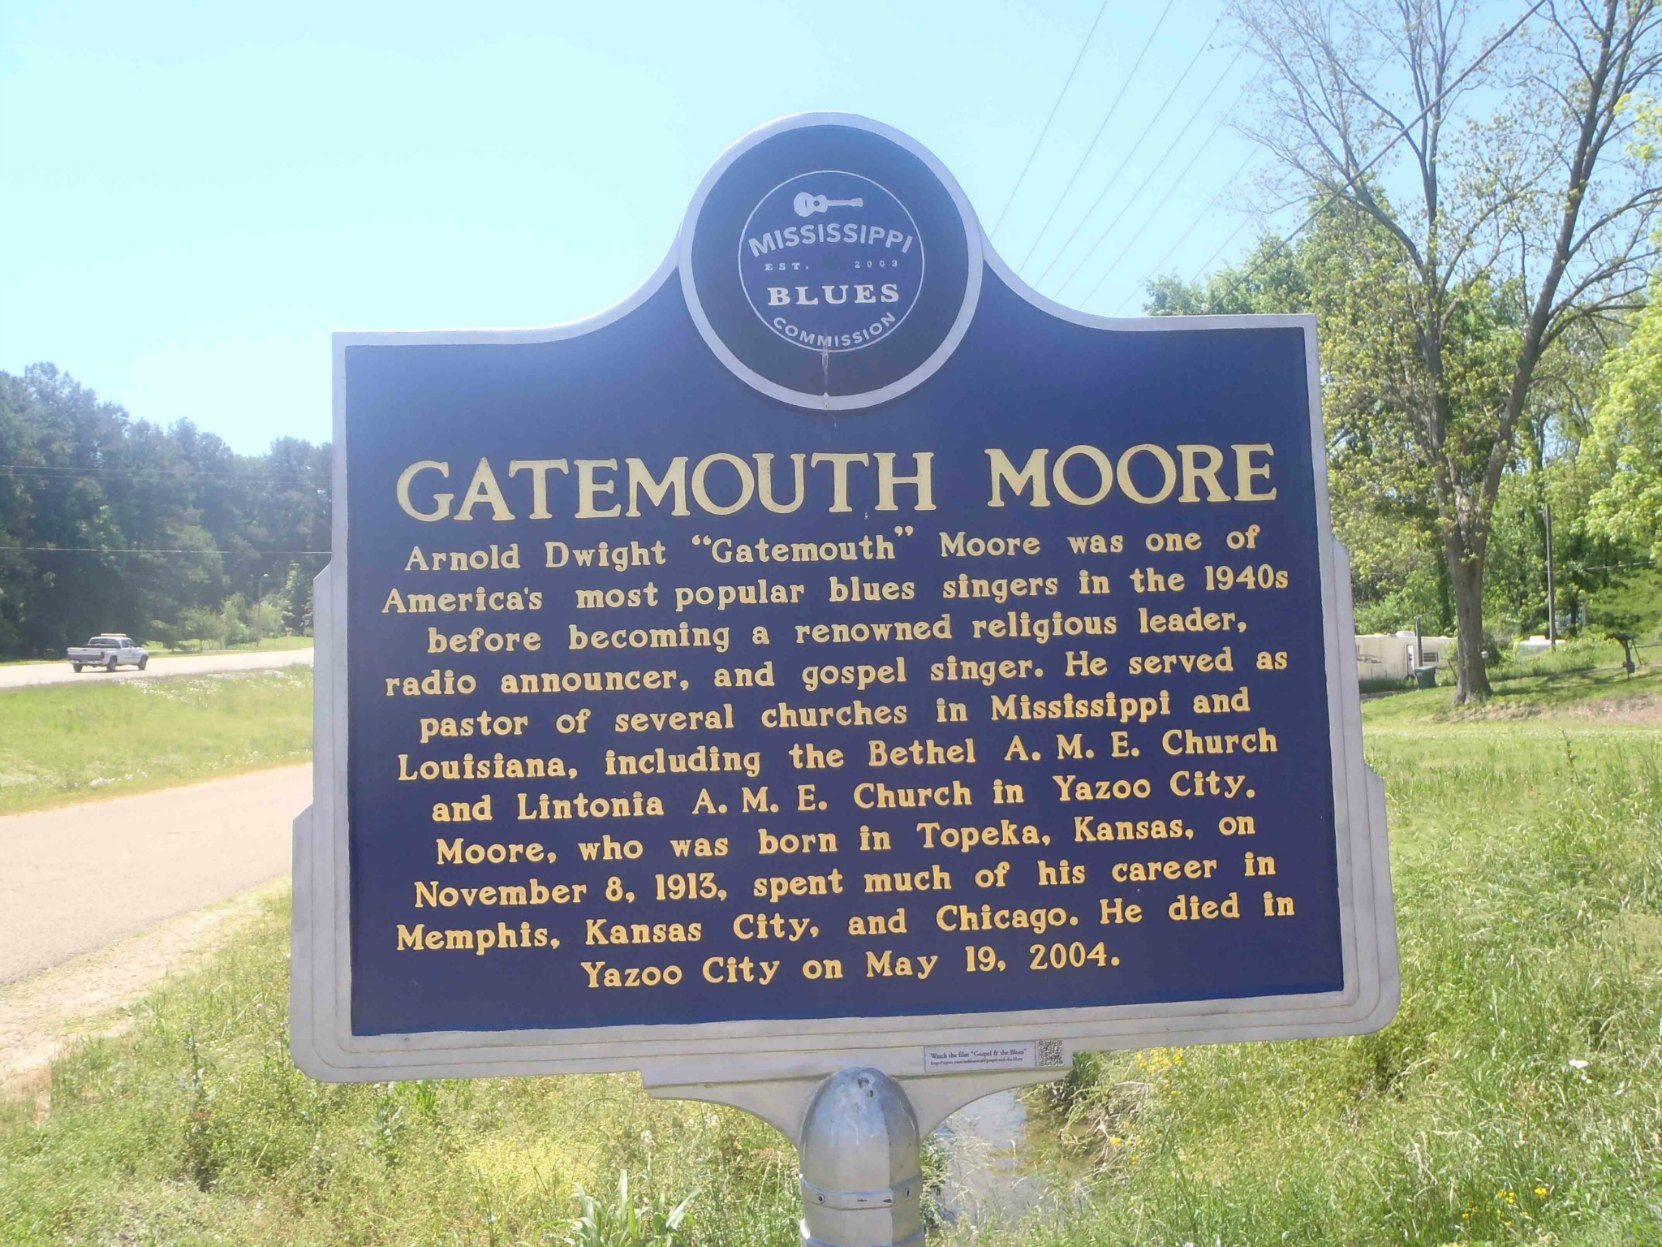 Mississippi Blues Trail marker for Gatemouth Moore, Yazoo City, Mississippi